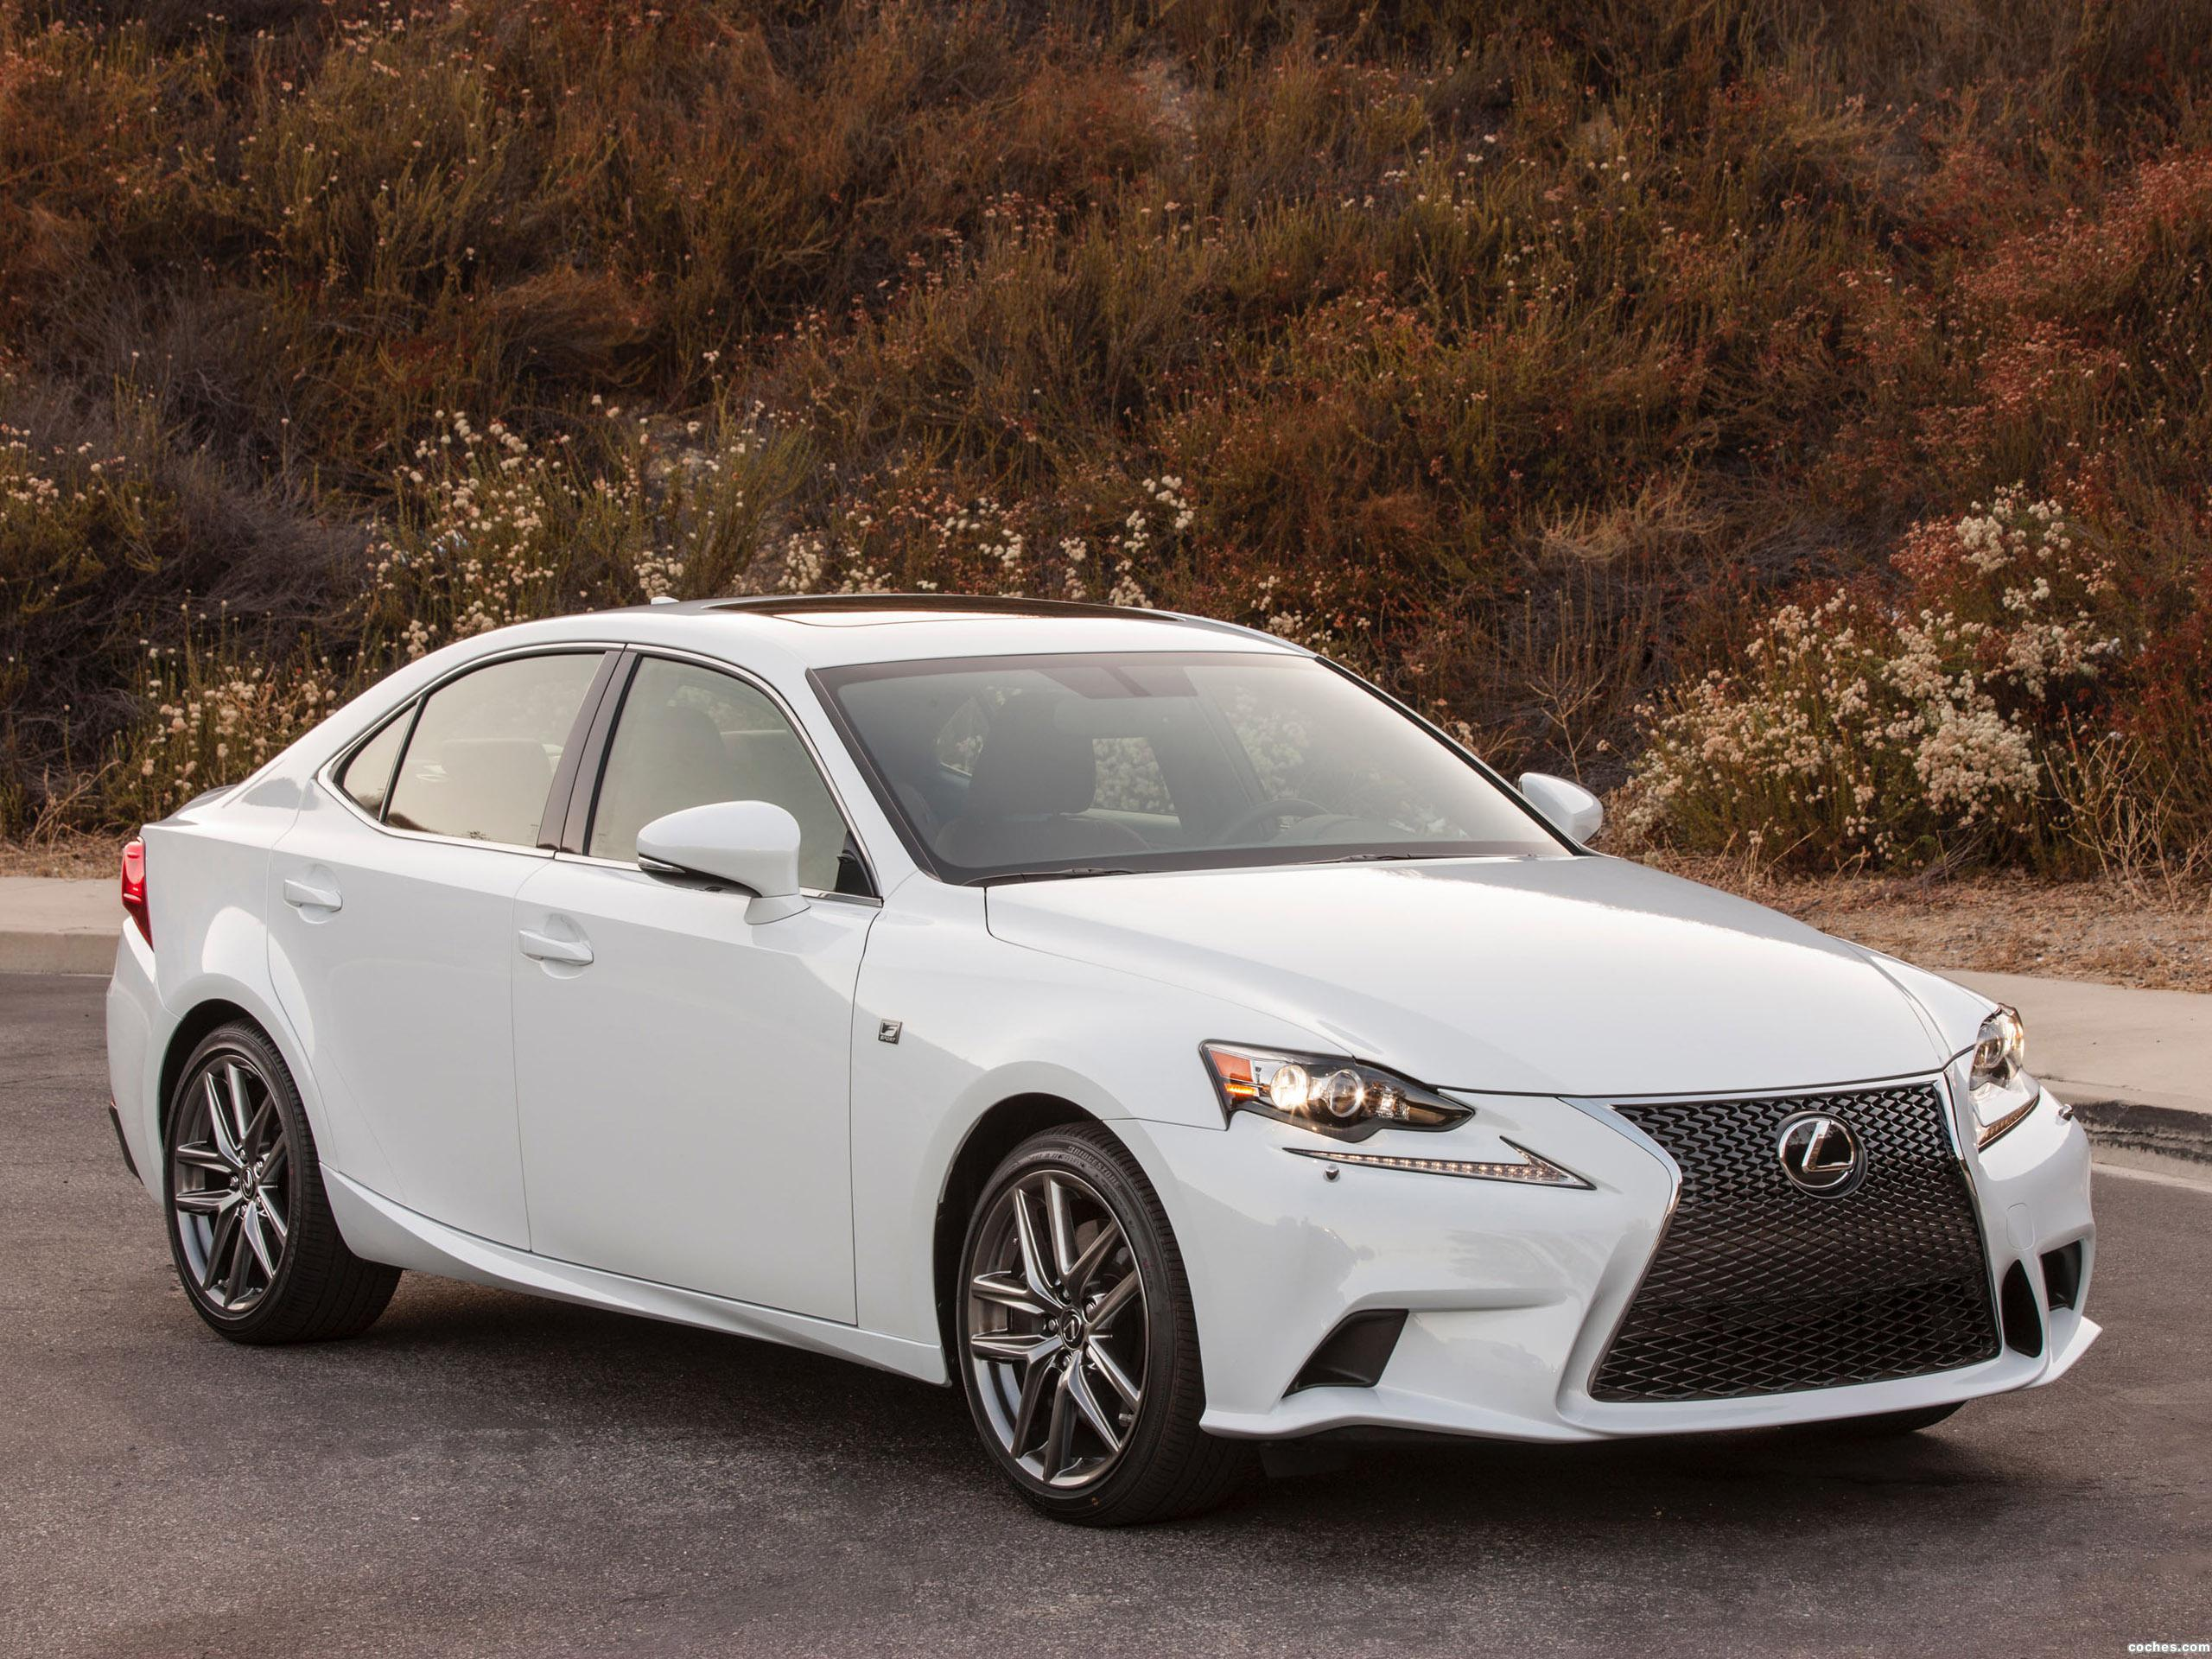 lexus_is-300-awd-f-sport-2015_r16.jpg